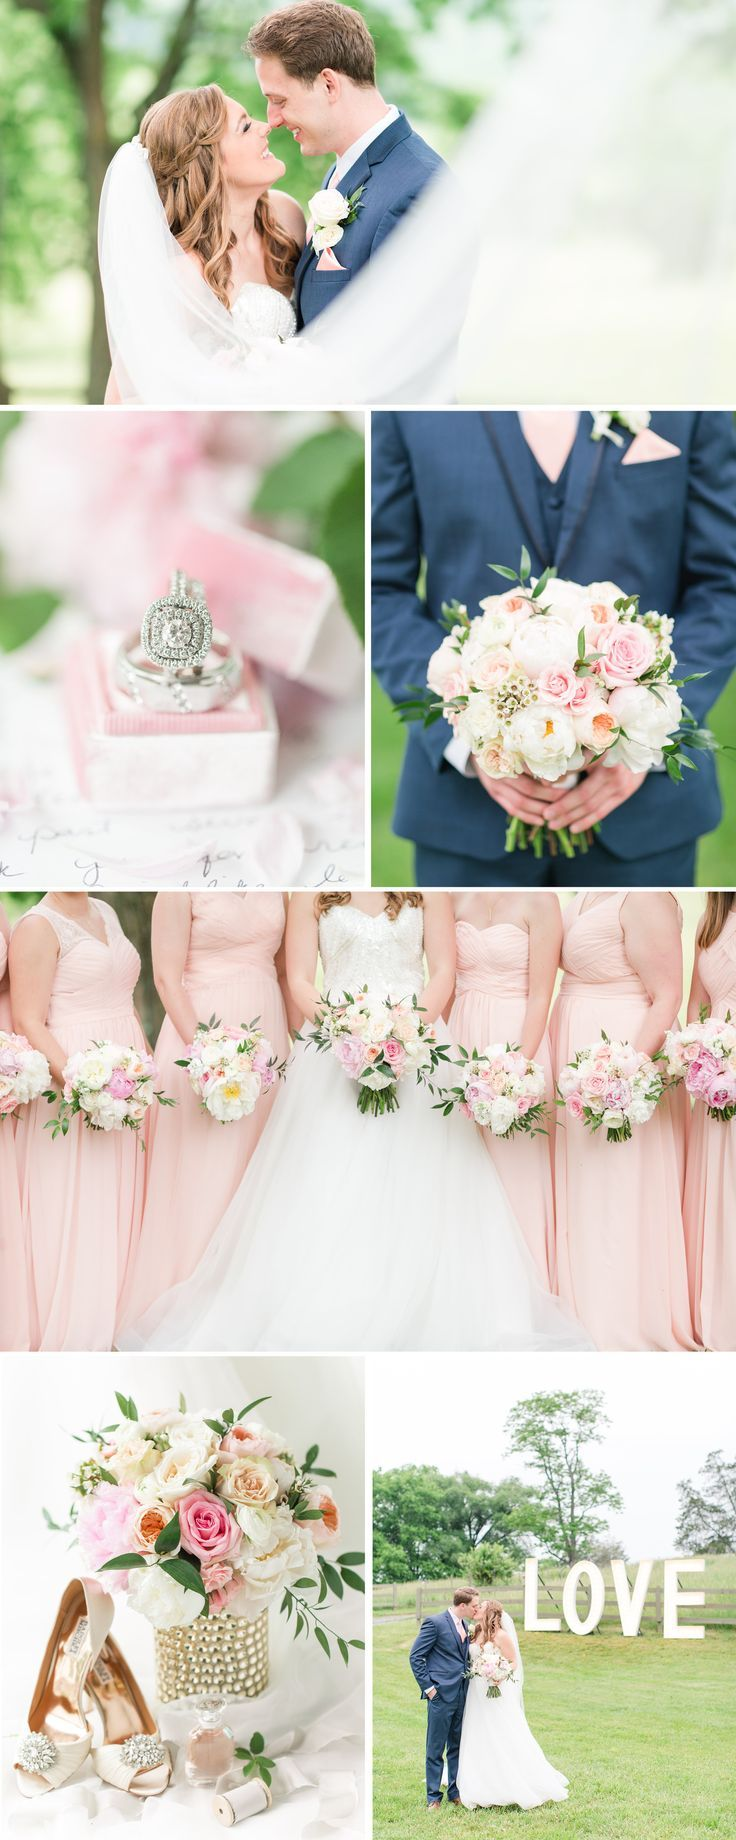 A Blush + Navy Inspired Spring Wedding at Big Spring Farm in Lexington, VA by Katelyn James Photography